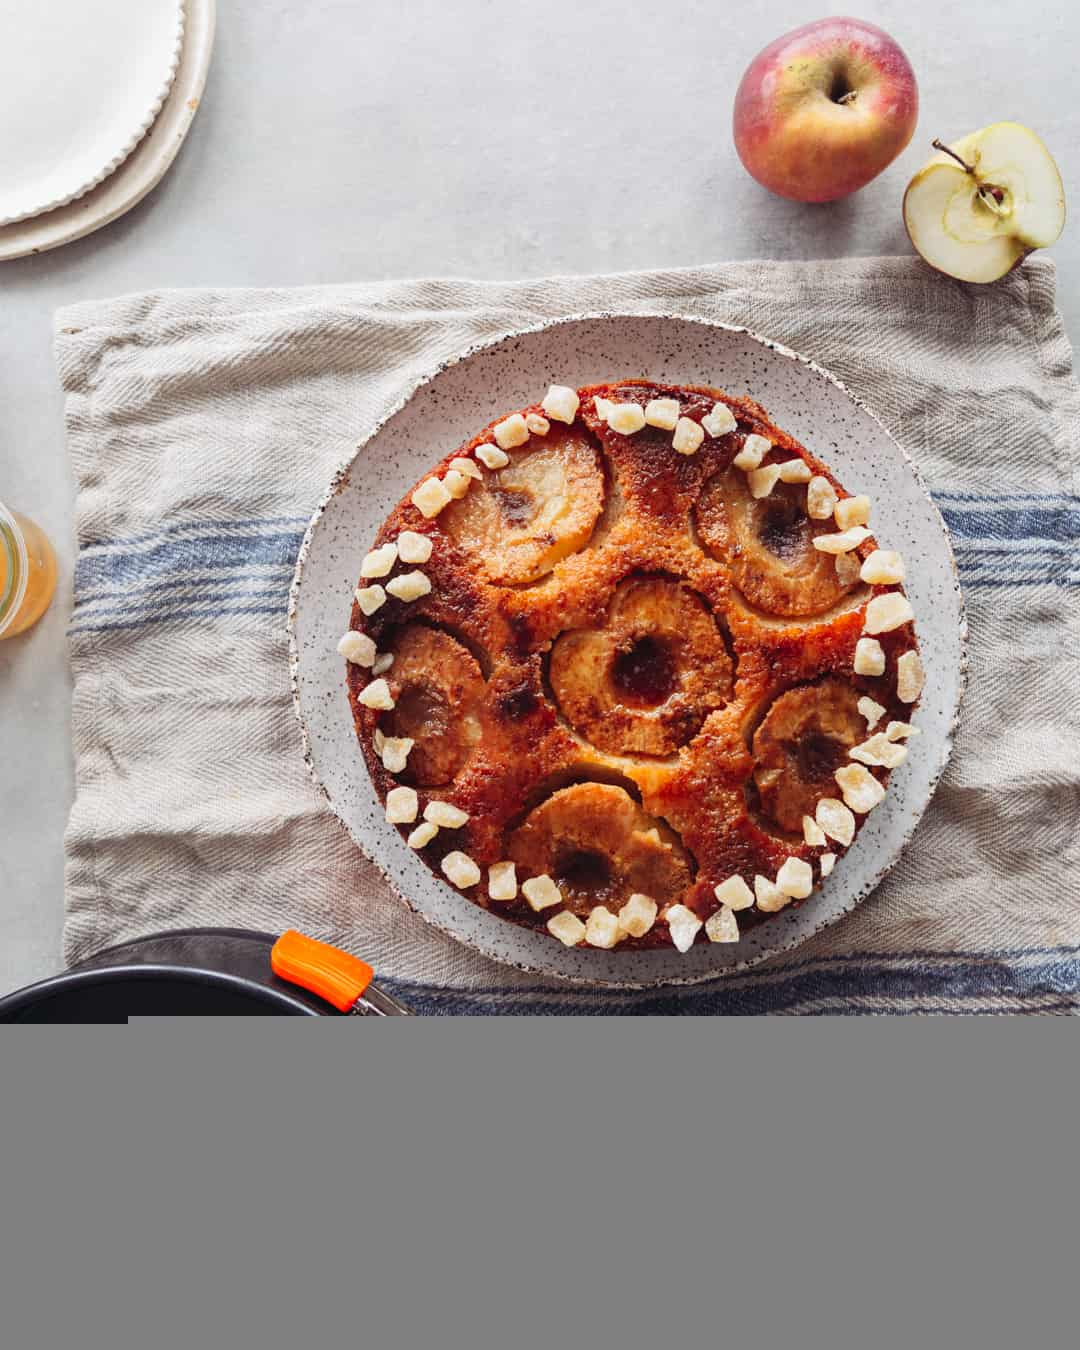 an upside-down apple and ginger cake overhead with mugs of coffee and a striped napkin